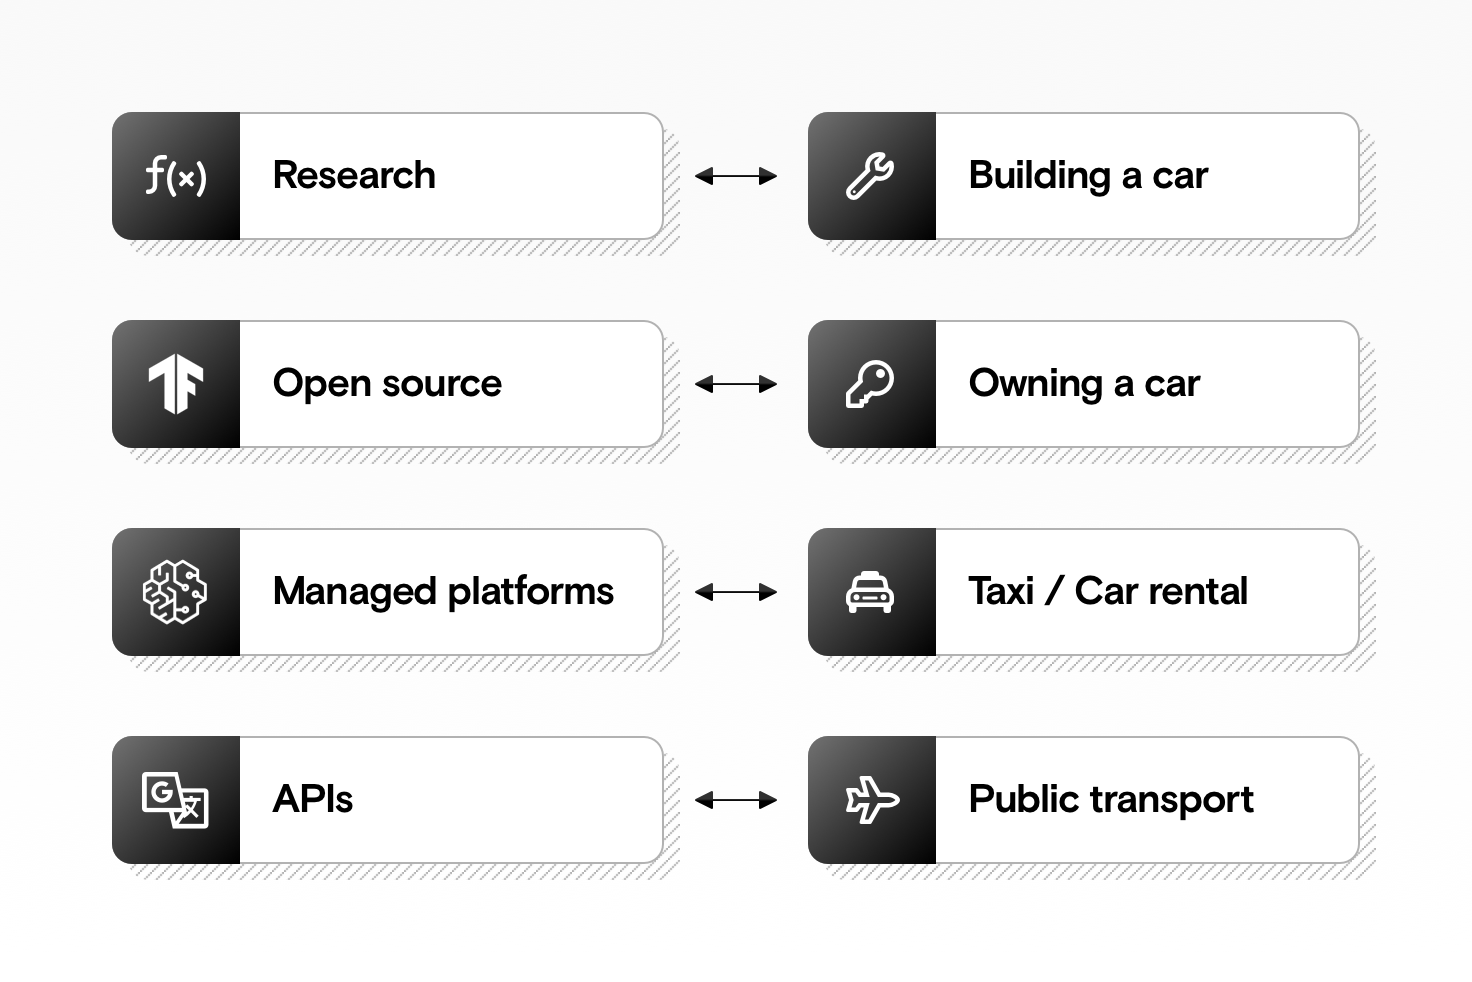 Two graphs showing APIs, managed platforms, open source frameworks, and research corresponding to public transport, taxis, owning a car, and building a car.